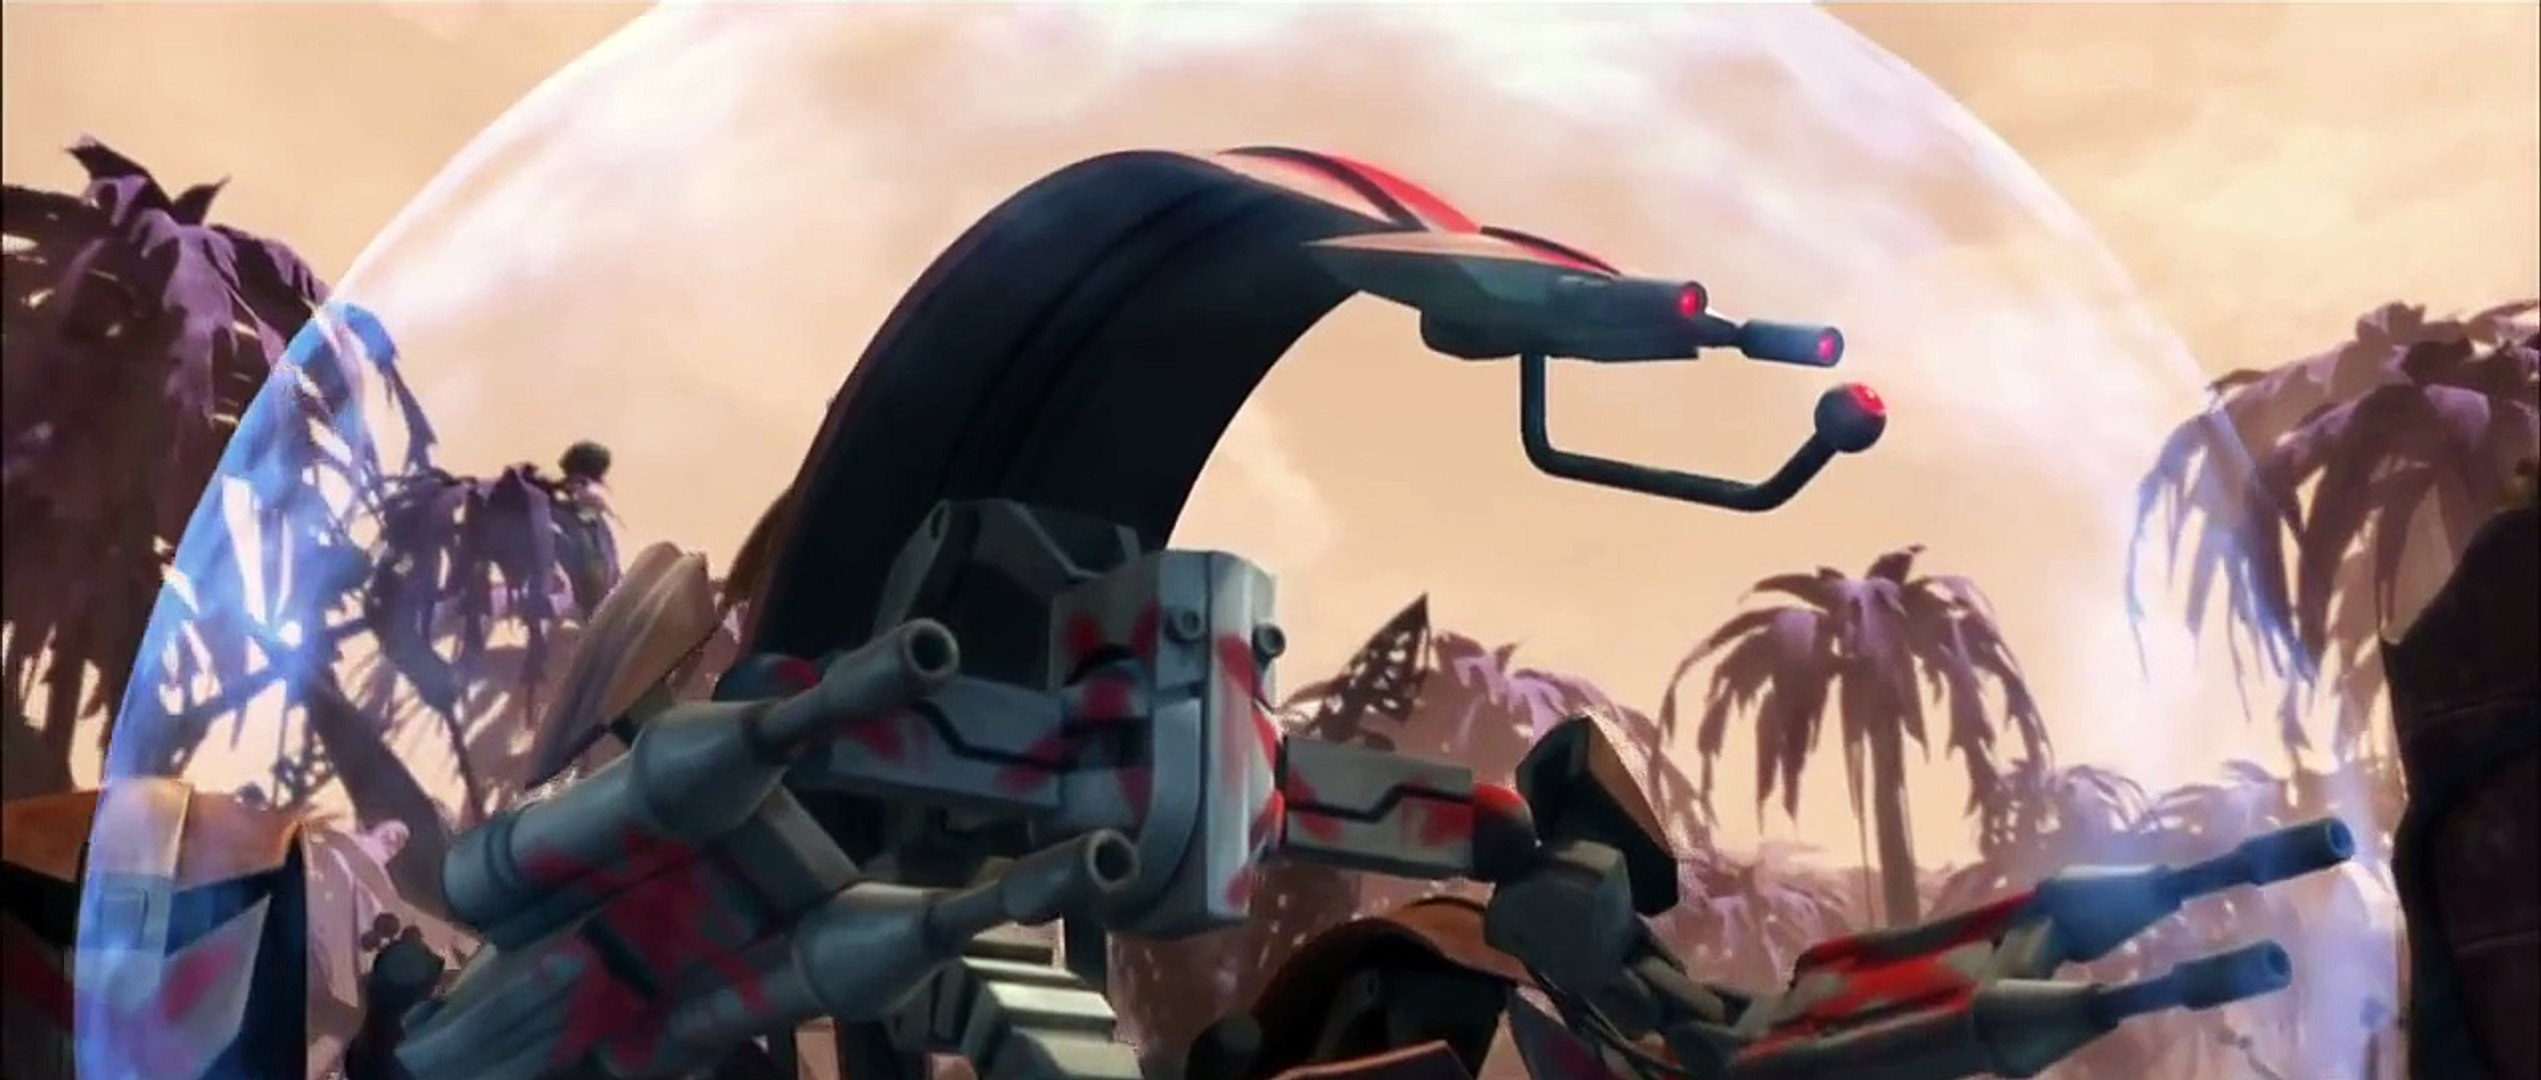 Star Wars: The Clone Wars A War on Two Fronts (Saison 5 Episode 2) Aperçu #2